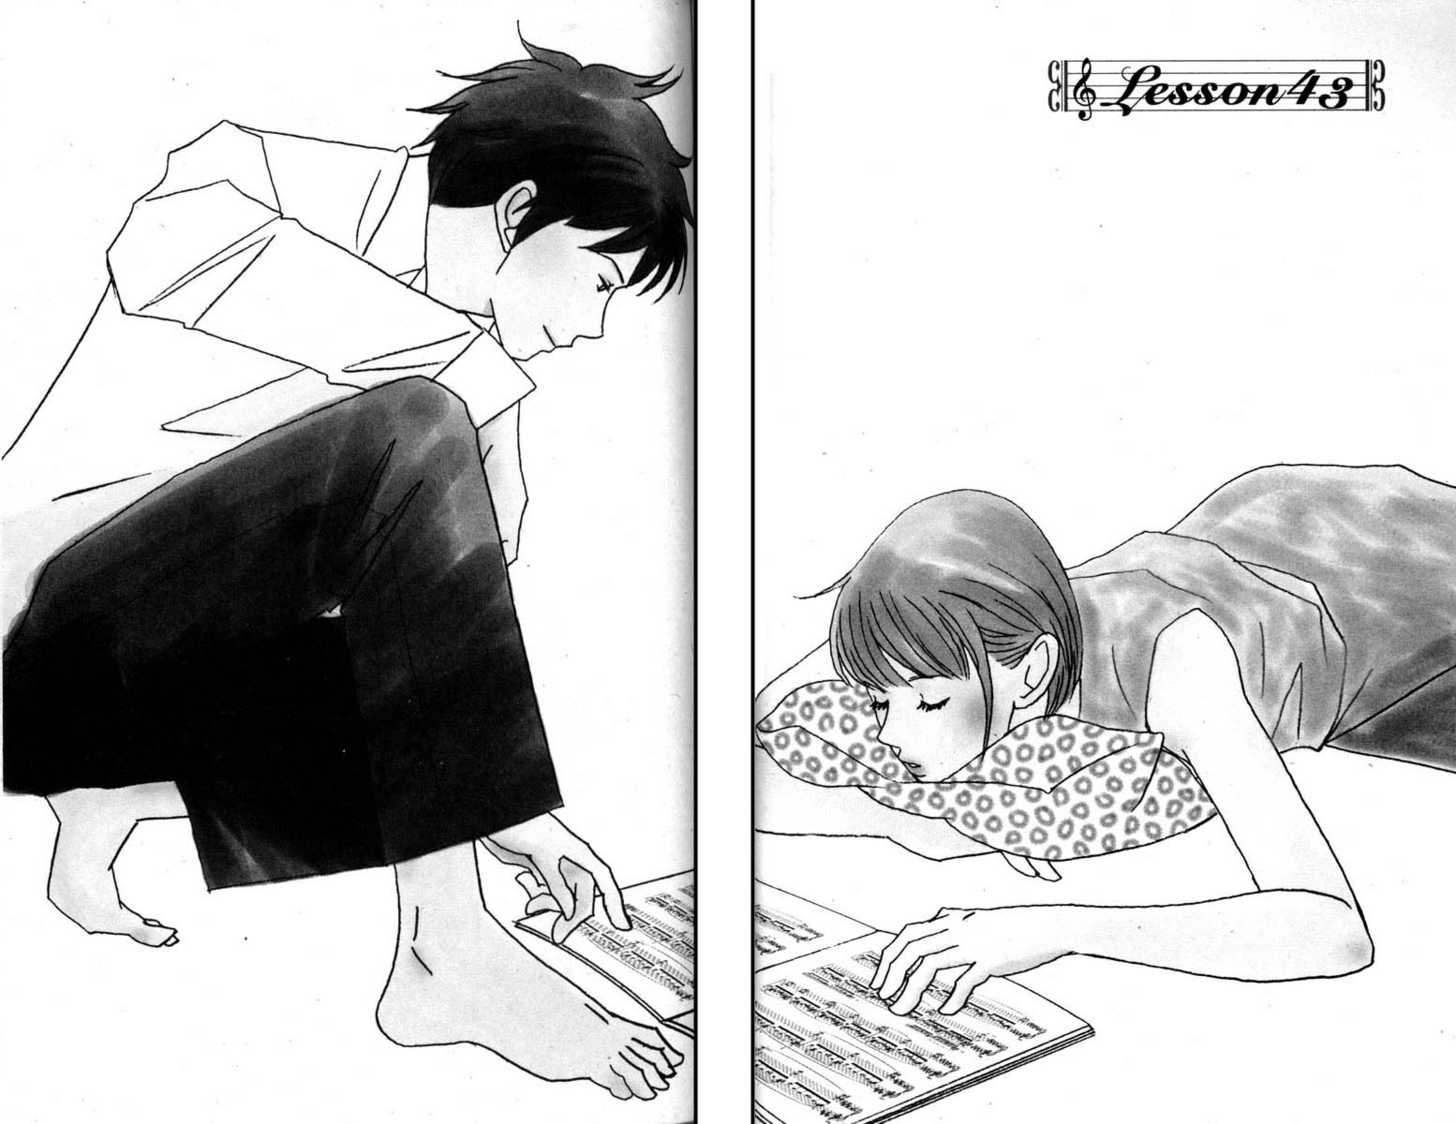 Nodame Cantabile 43 Page 1